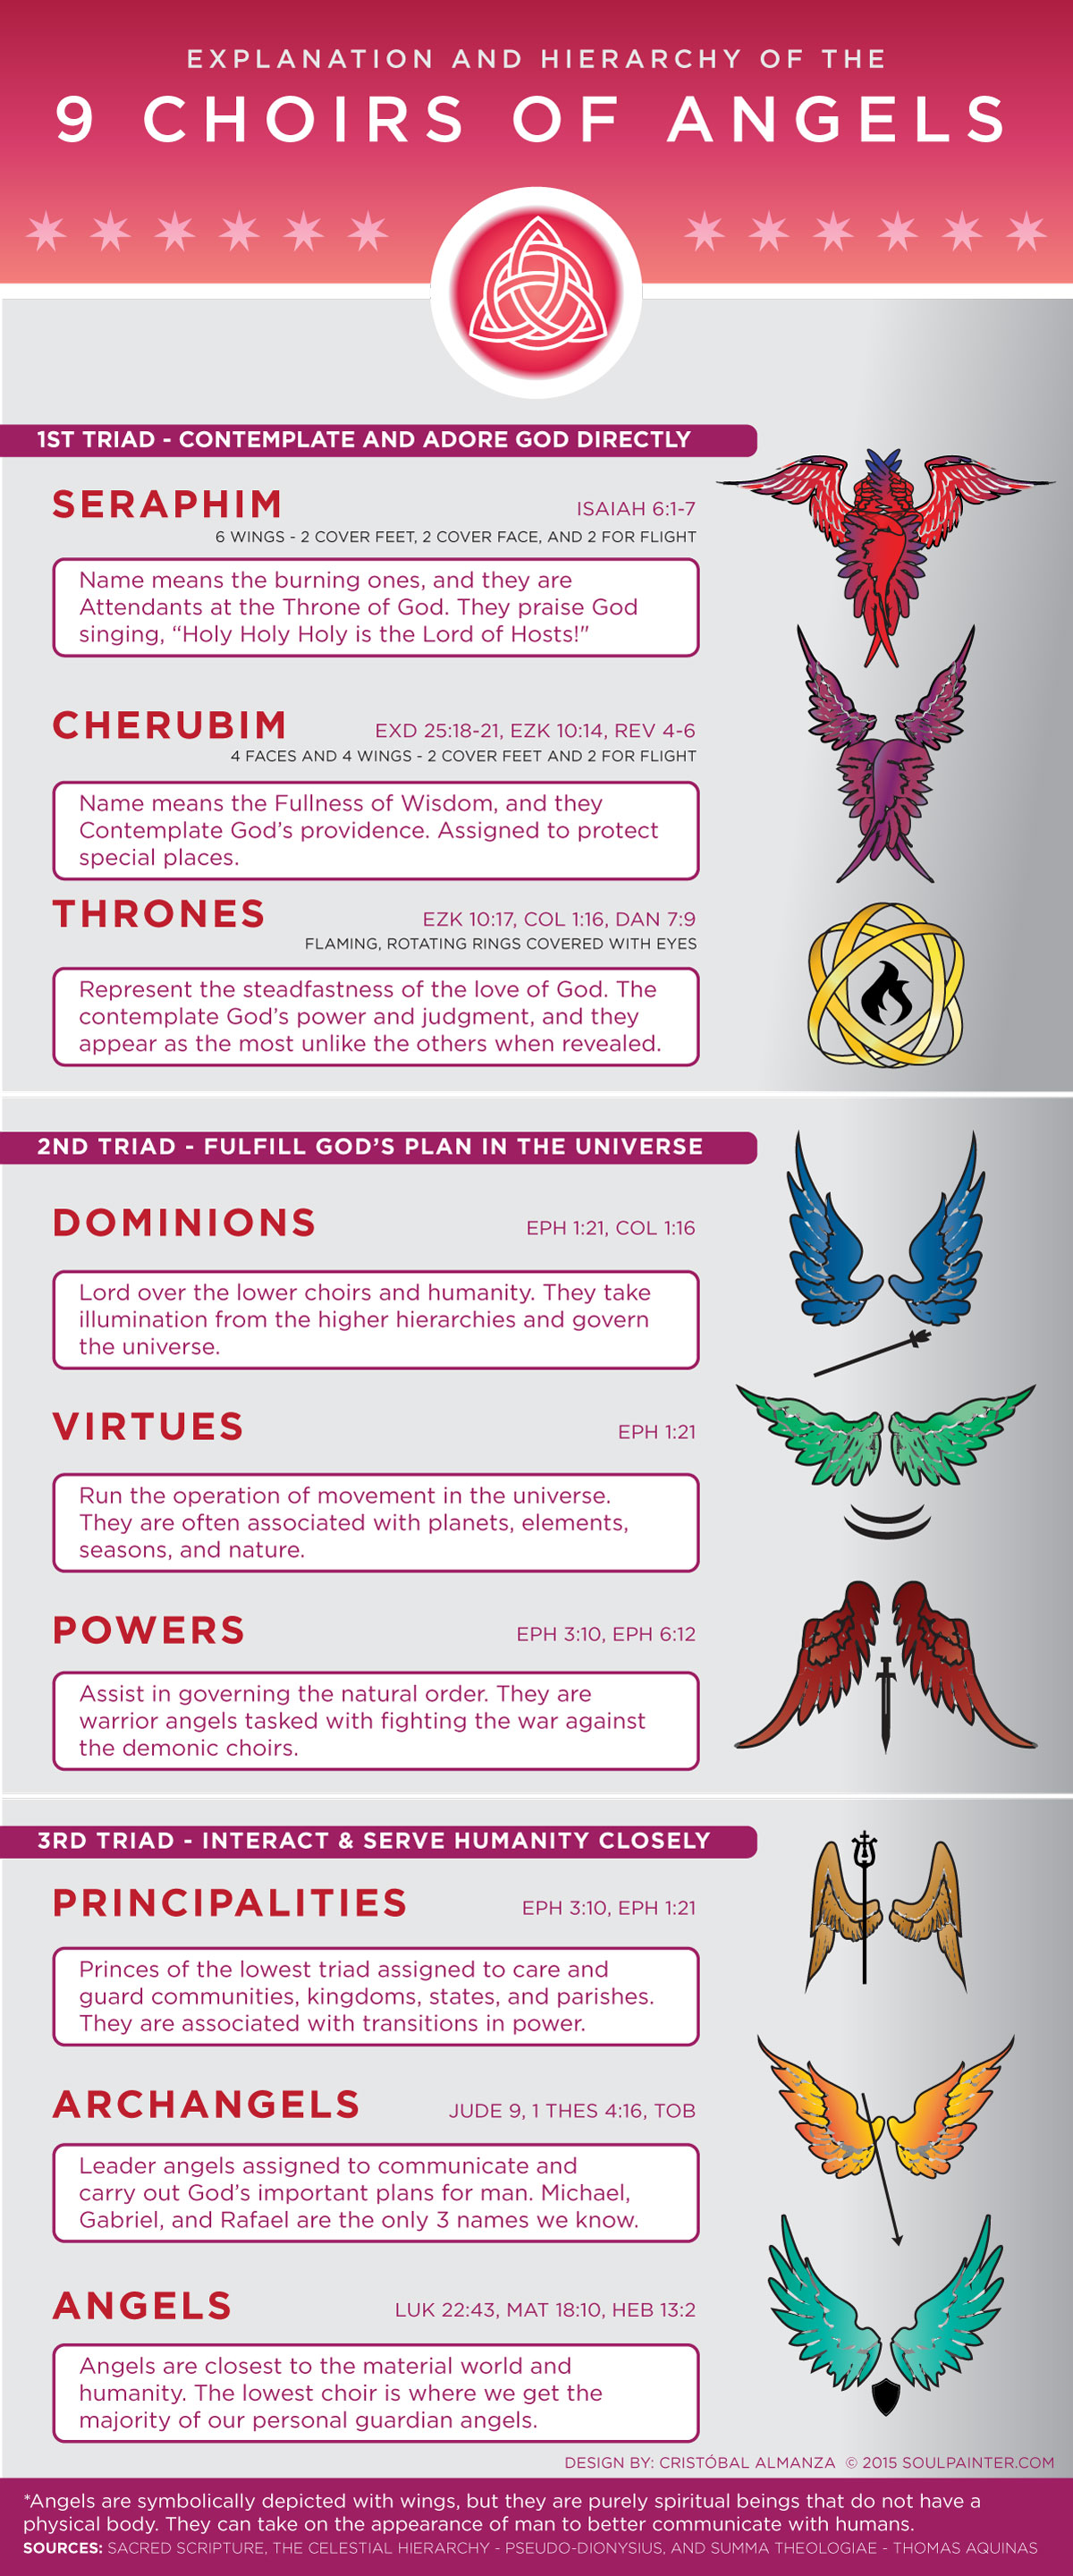 Hierarchy of the 9 Choirs of Angels Infographic